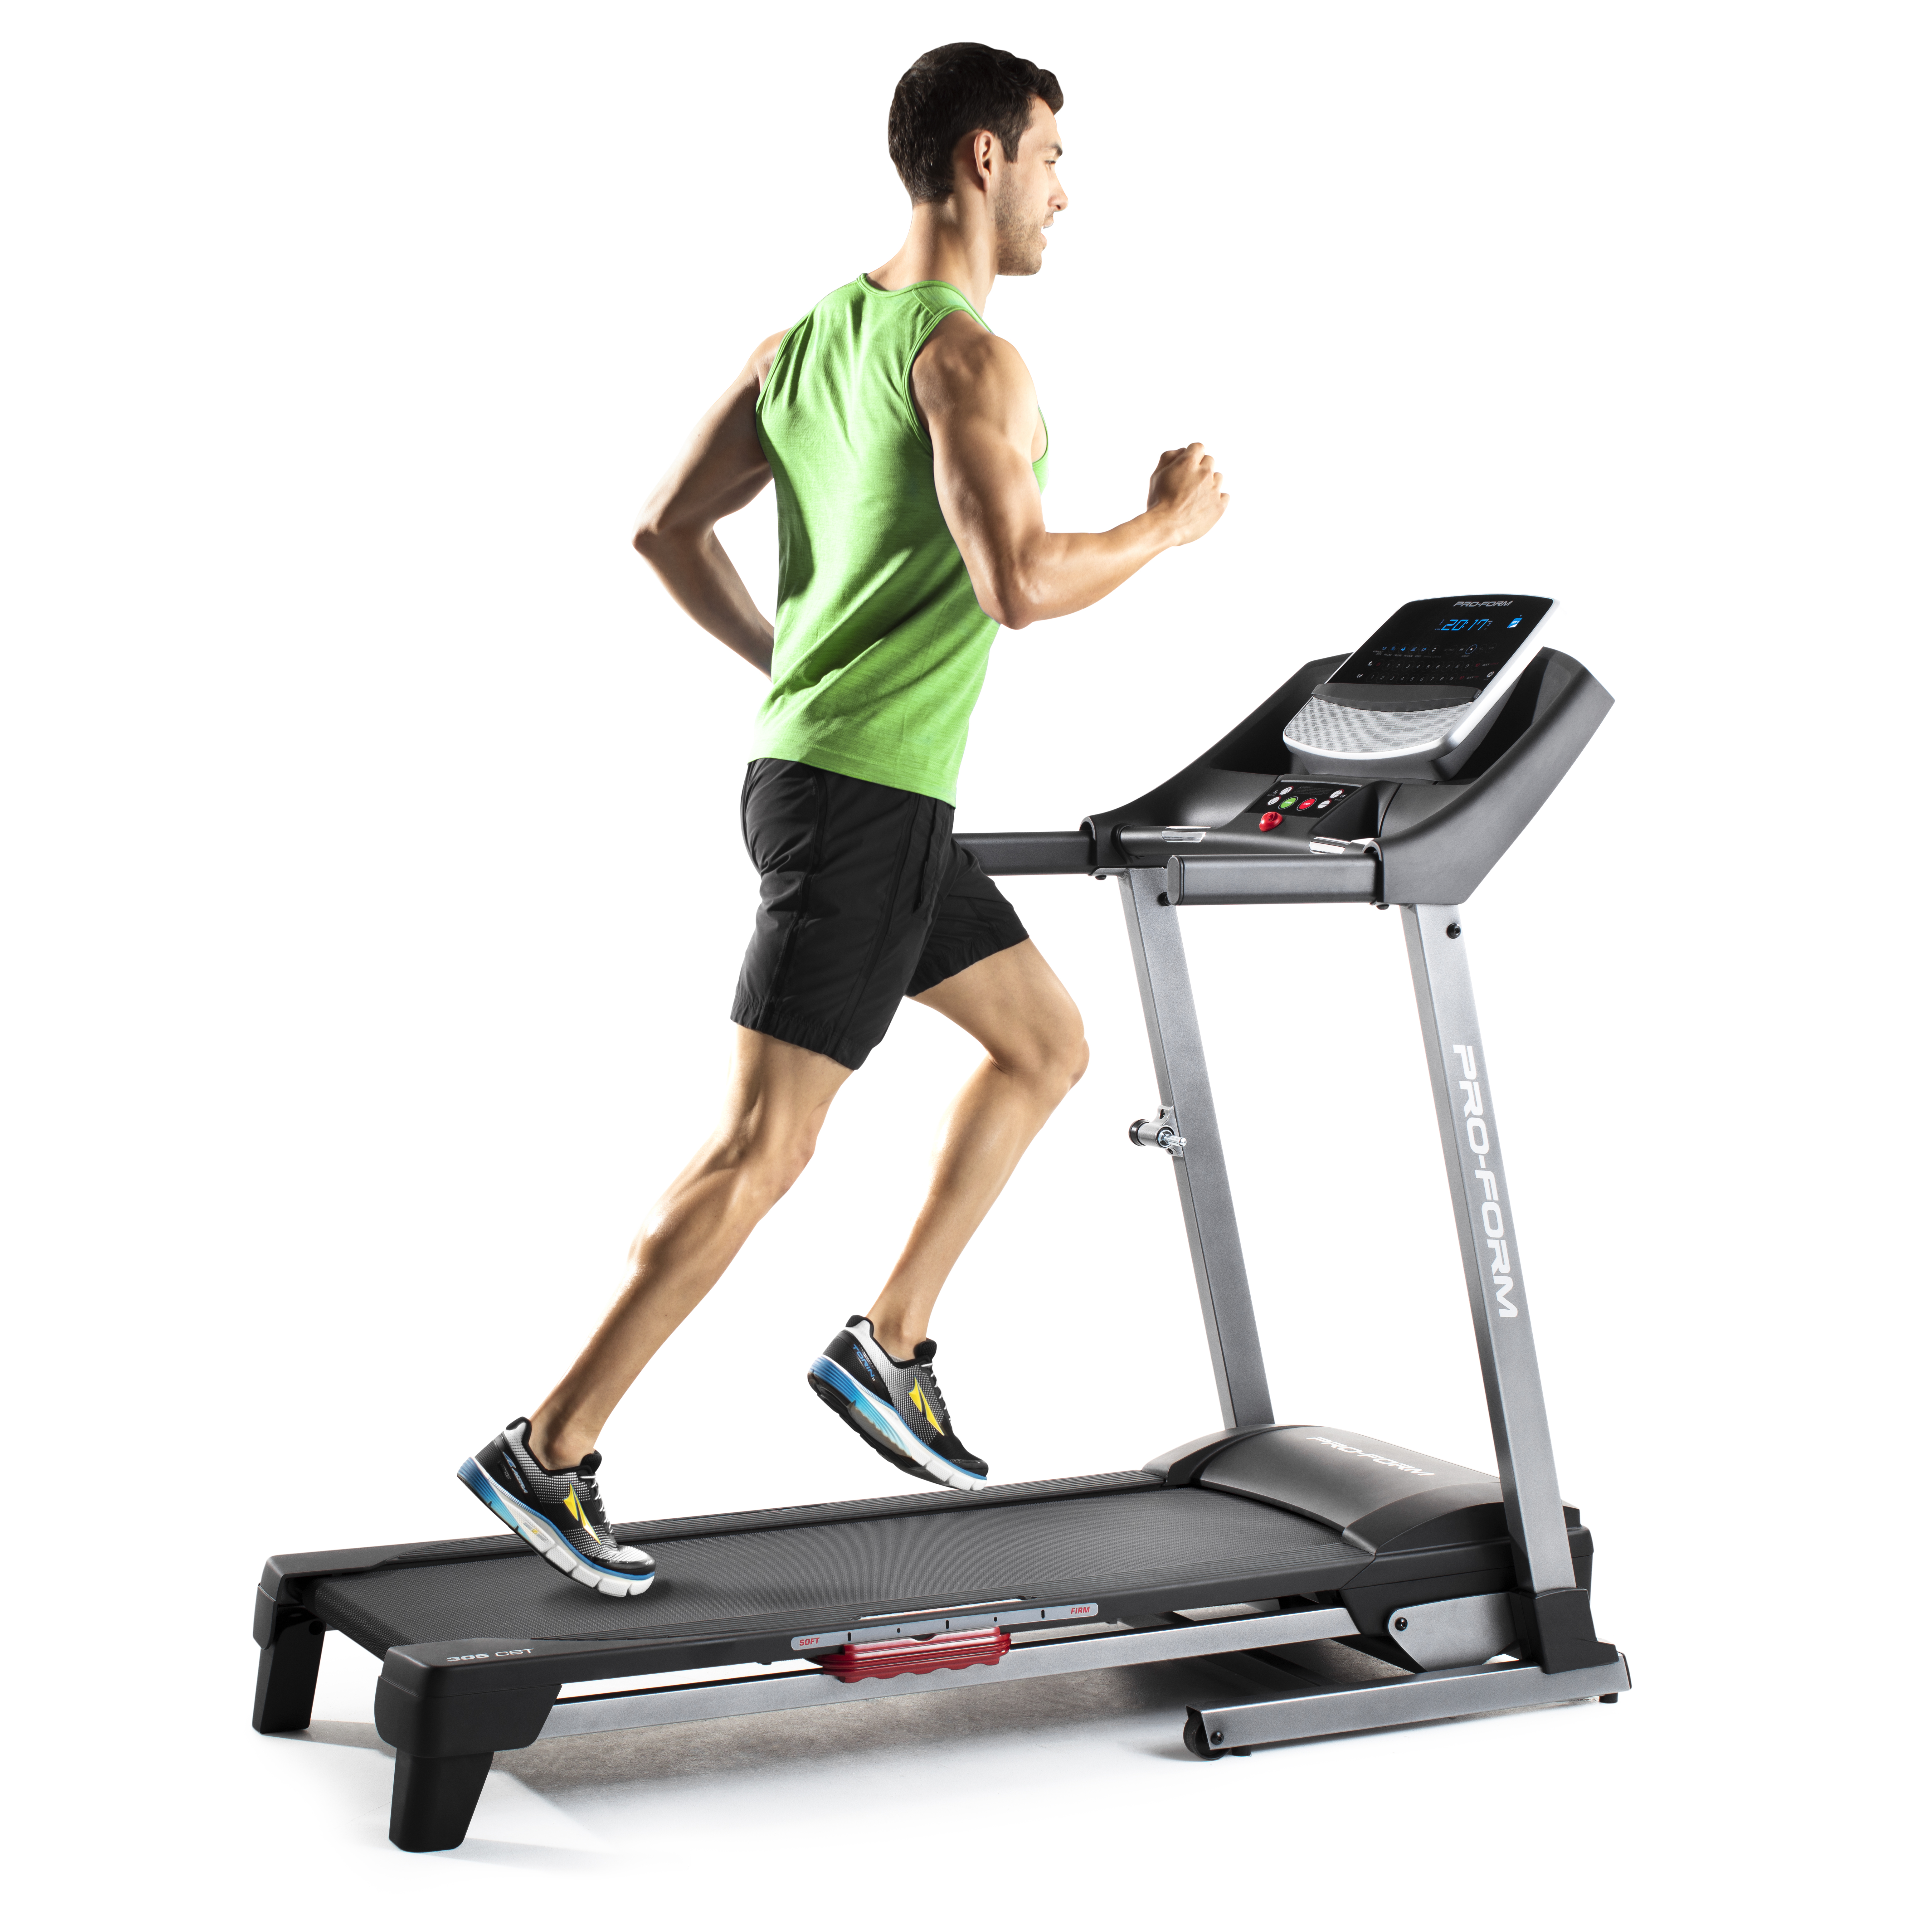 ProForm 305 CST Treadmill with Easy Assembly